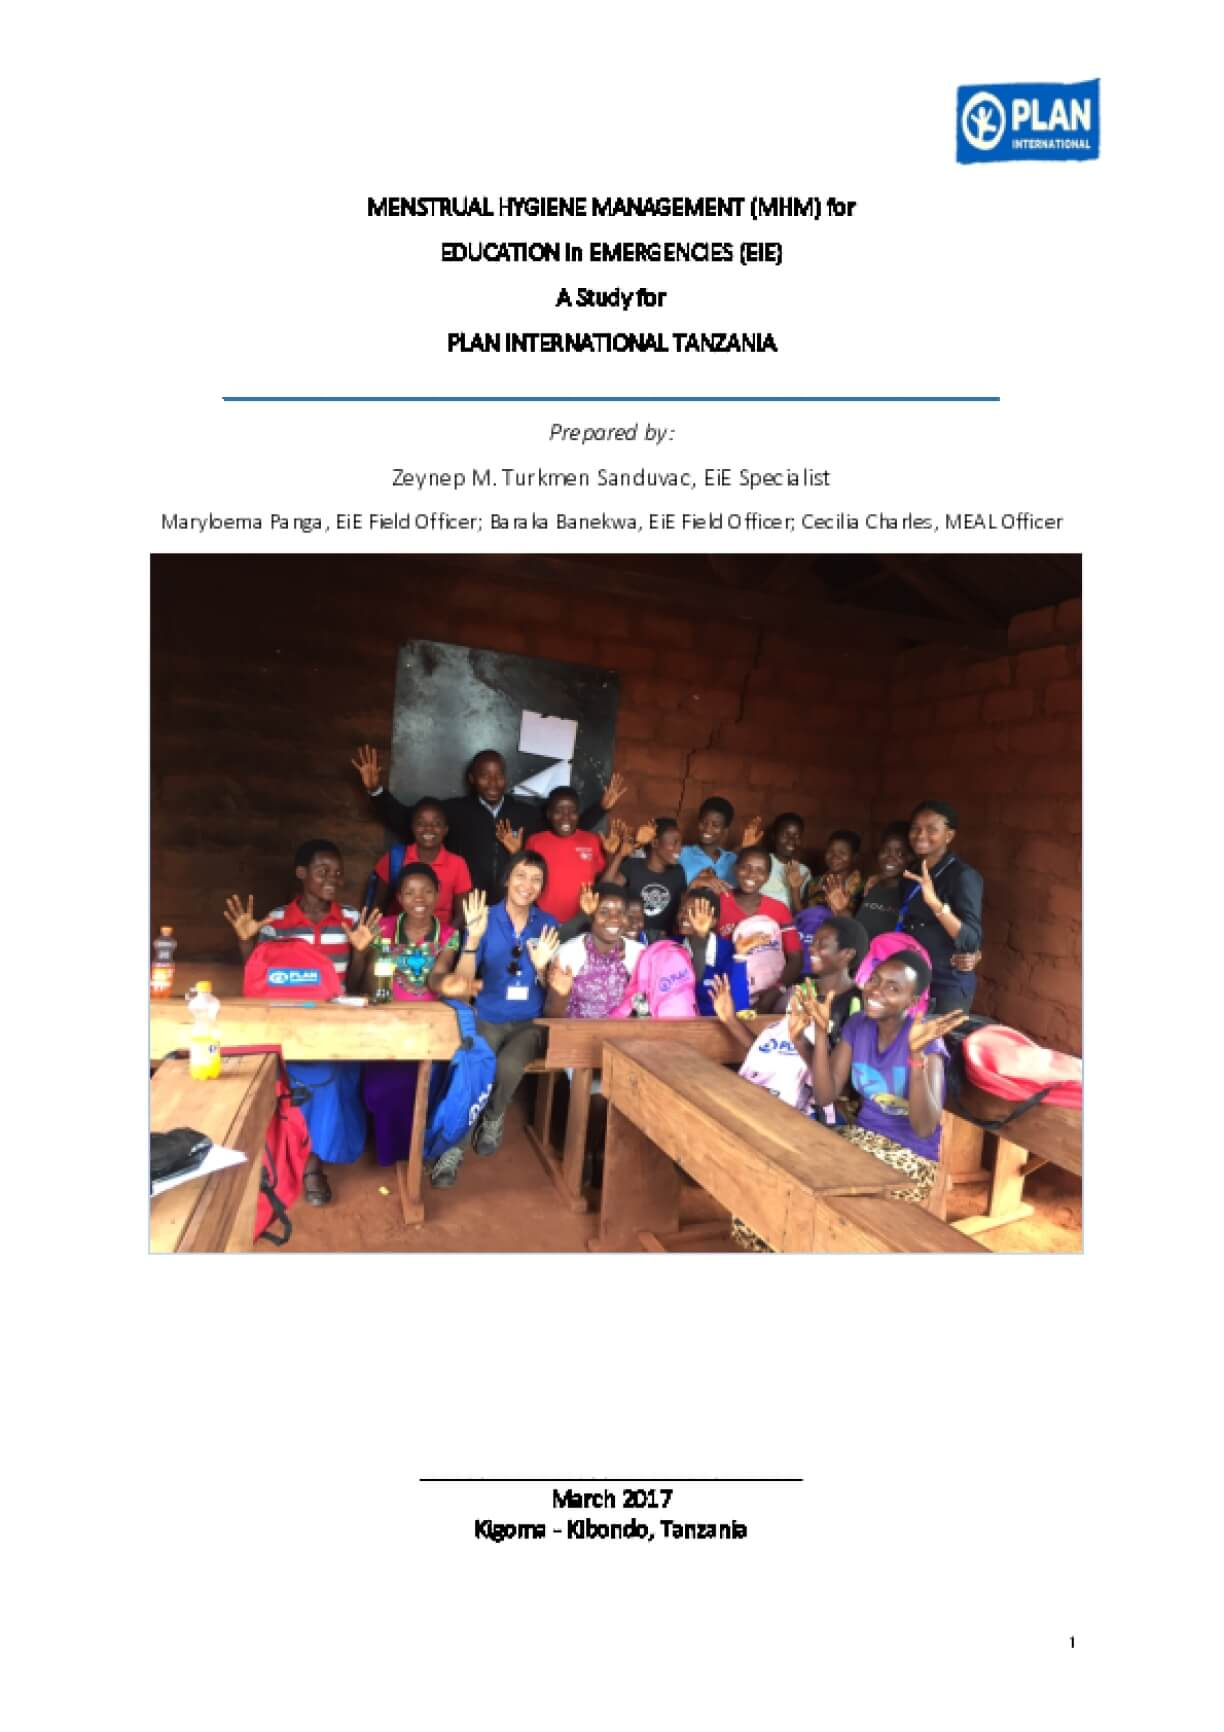 Menstrual Hygiene Management (MHM) for Education in Emergencies (EiE): A Study for Plan Intentional Tanzania